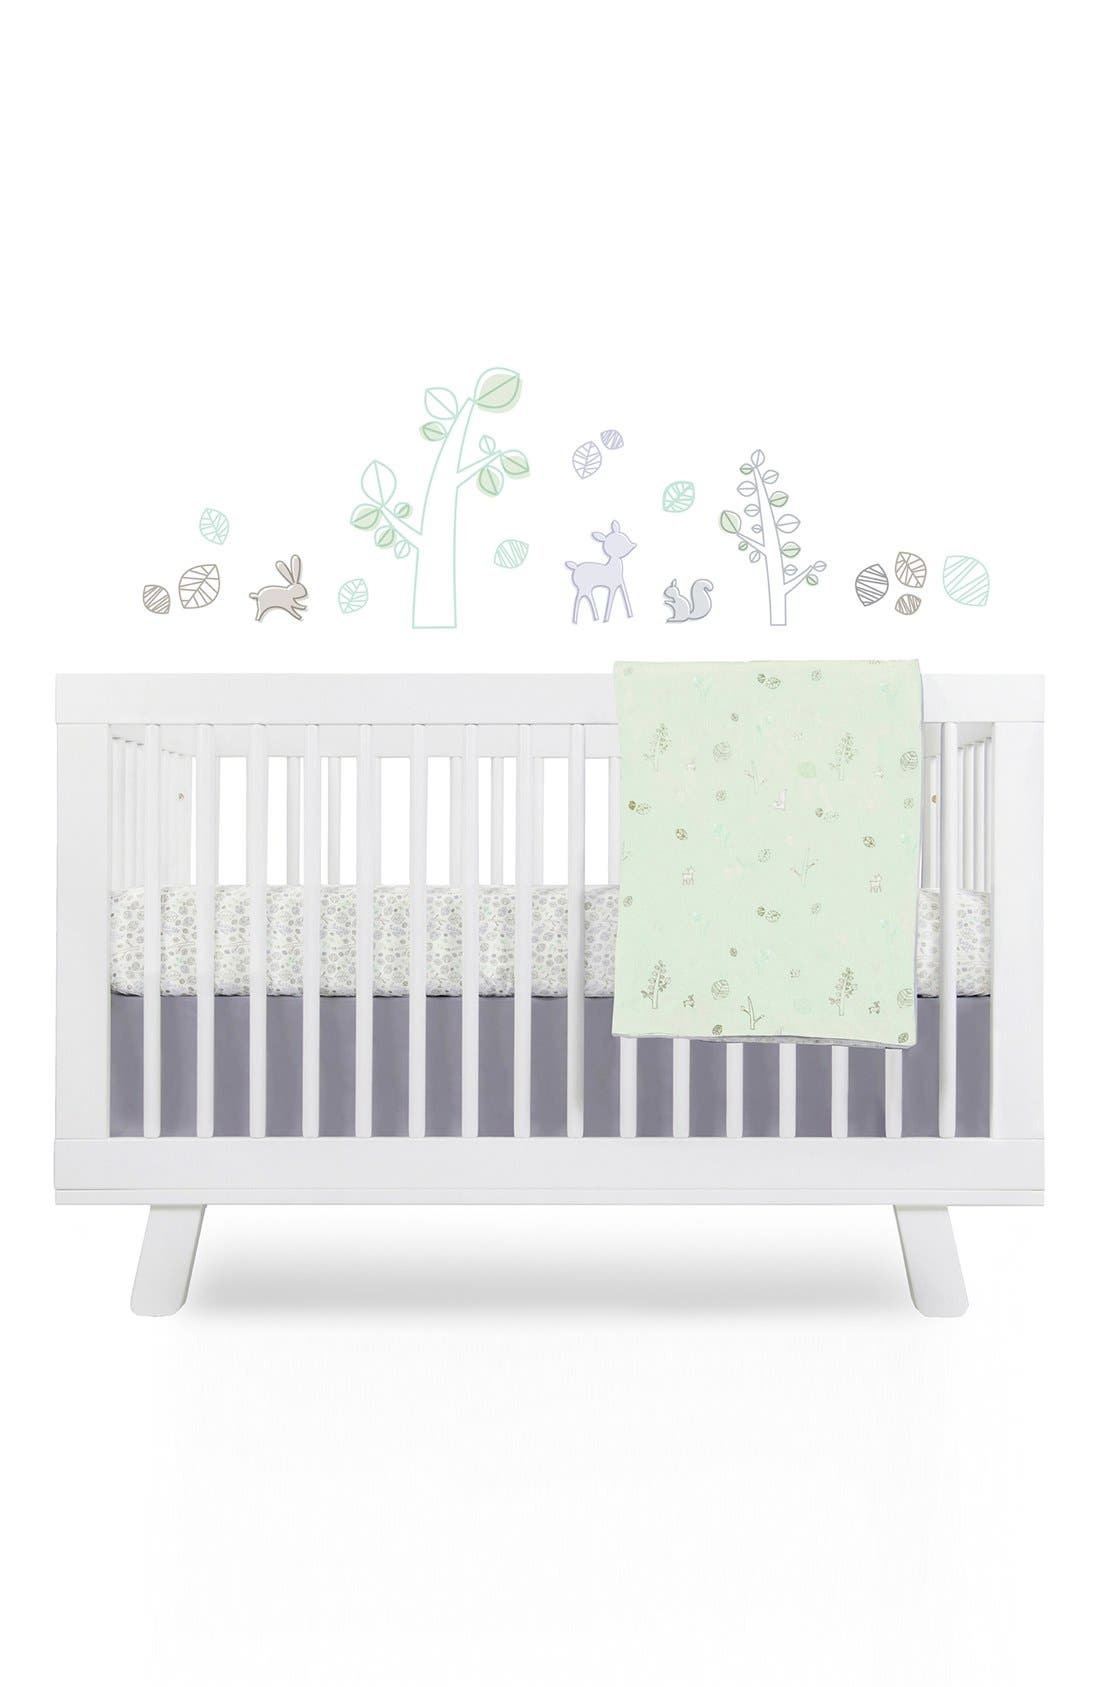 babyletto 'Woods' Crib Sheet, Crib Skirt, Contour Changing Pad, Play Blanket & Wall Decals